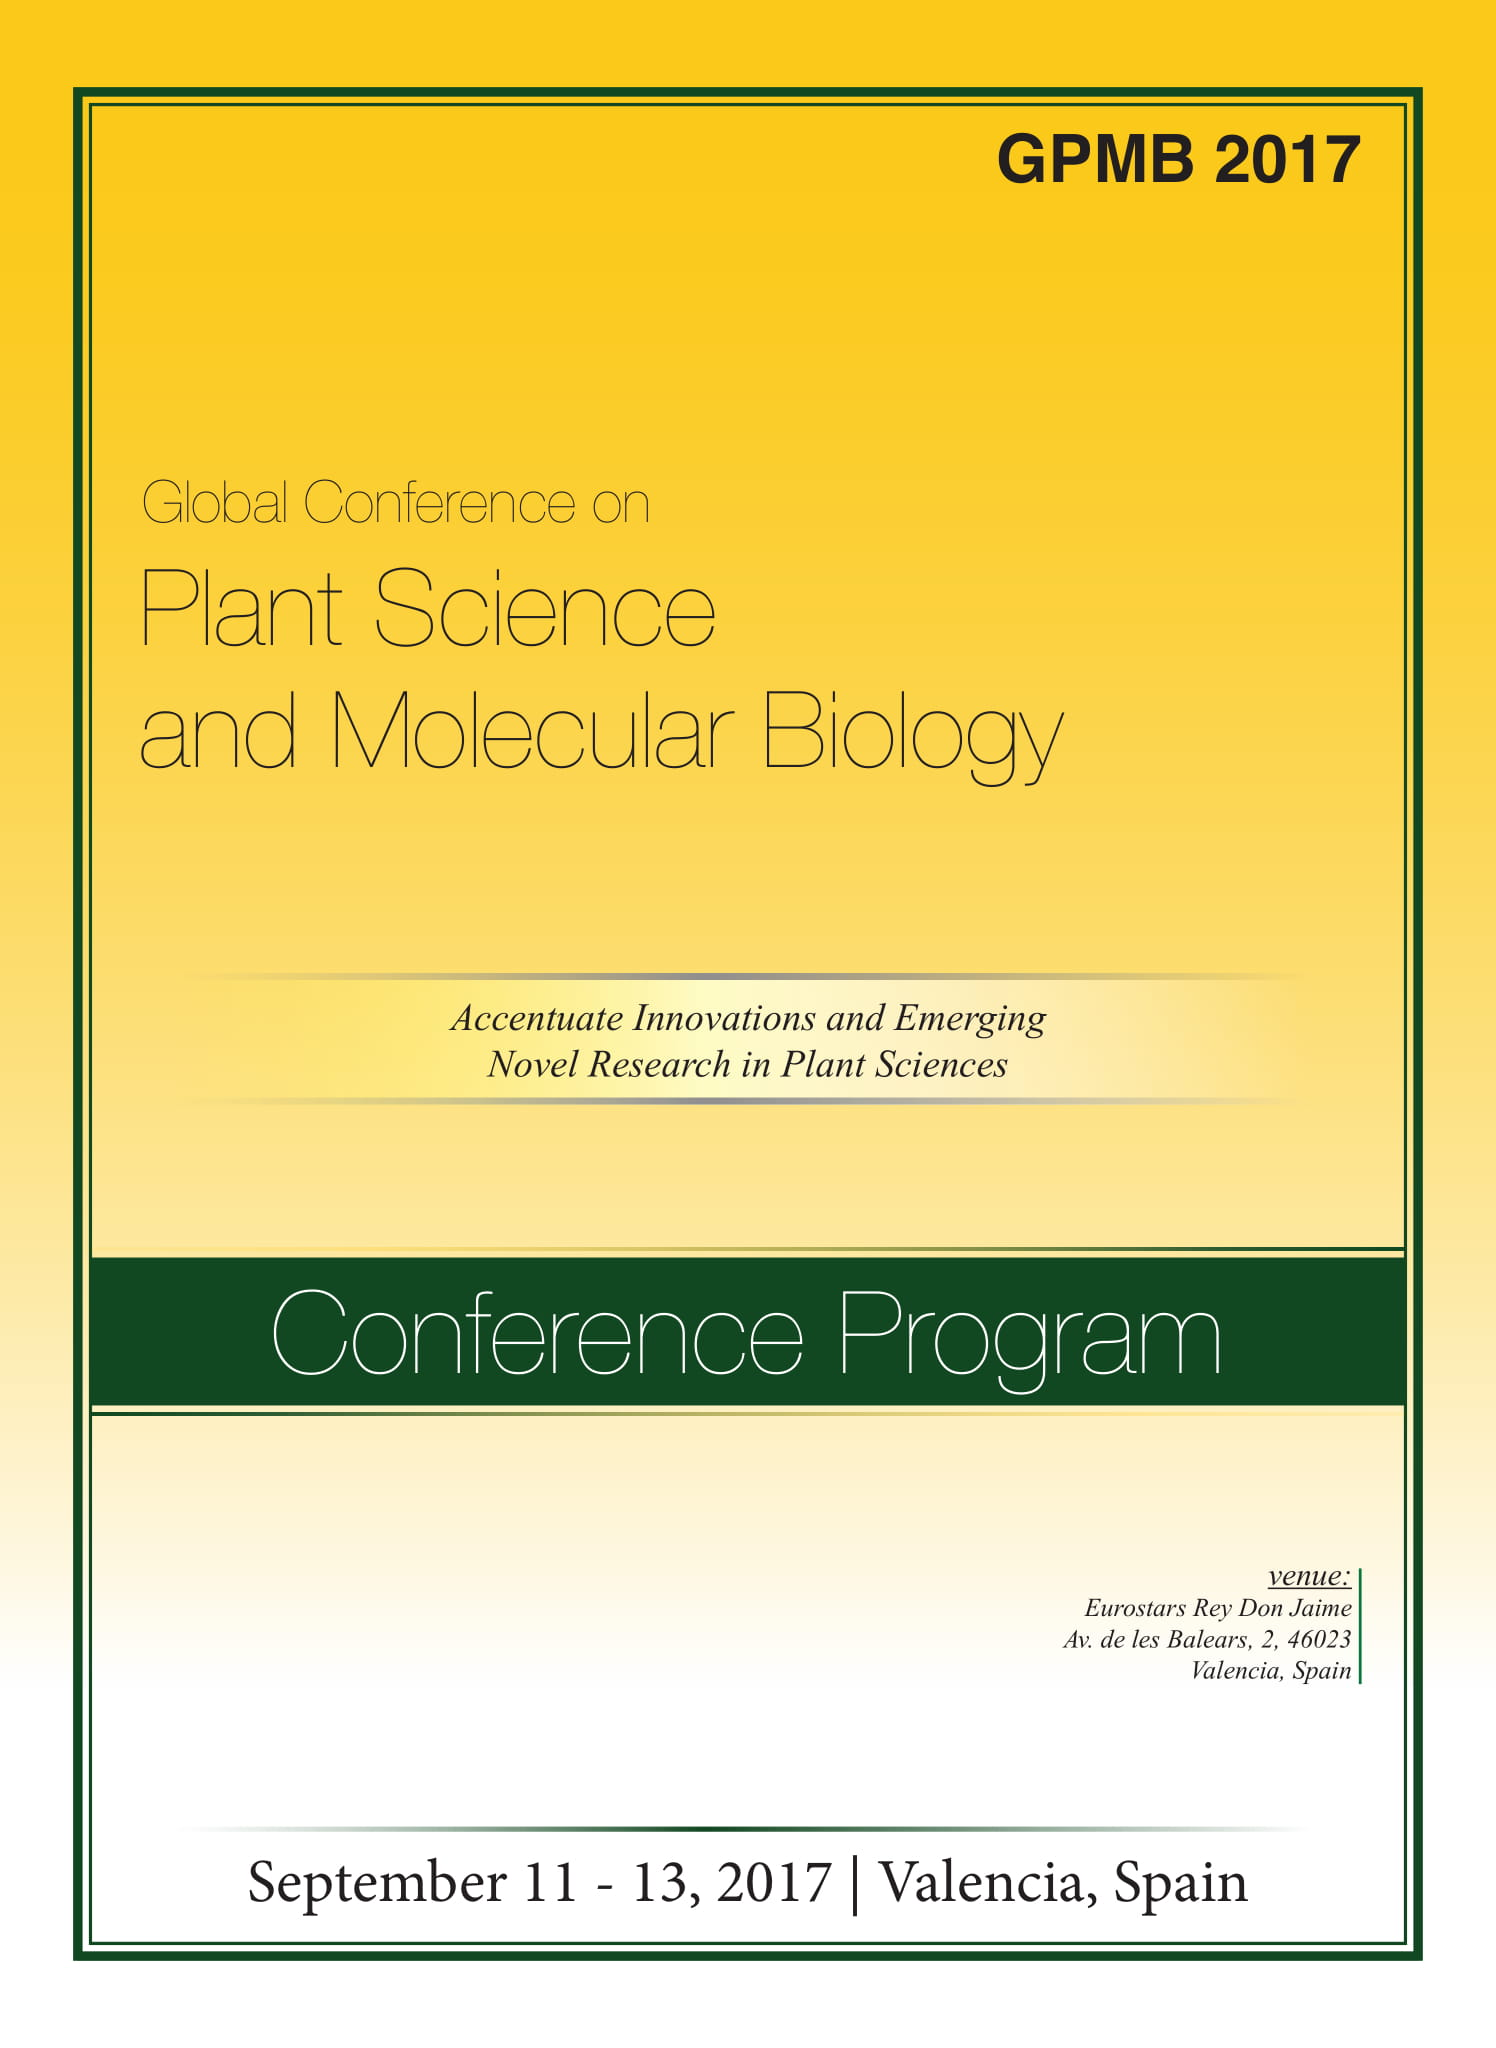 Global Conference on Plant Science and Molecular Biology Program